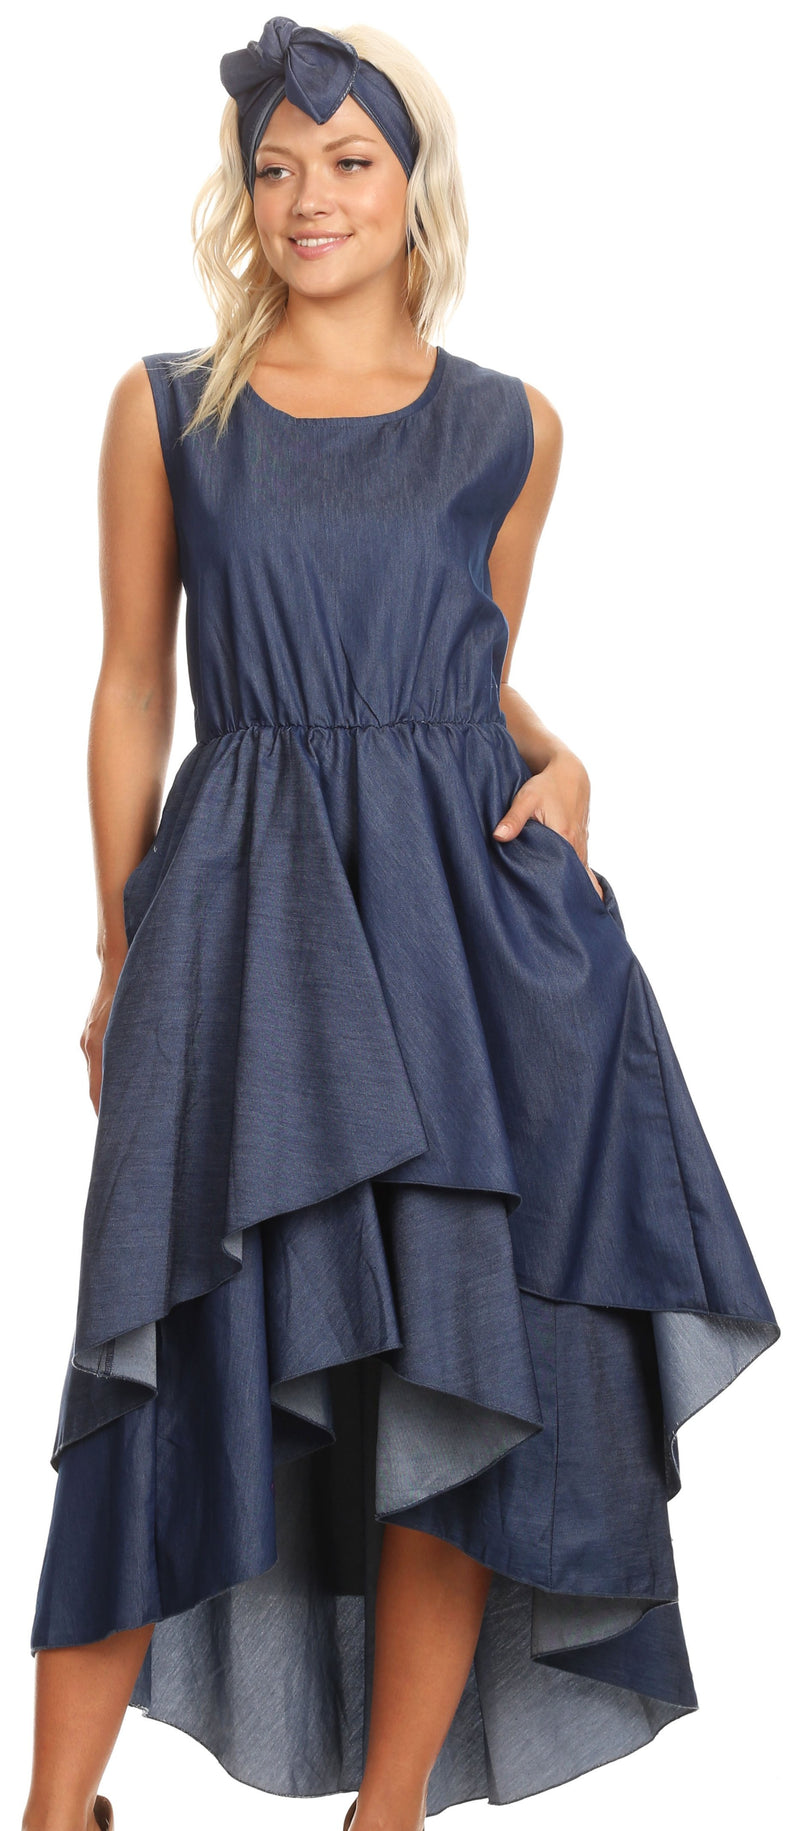 Sakkas Emalia Women's Sleeveless Cocktail High Low Hem Dress with Pockets Chambray